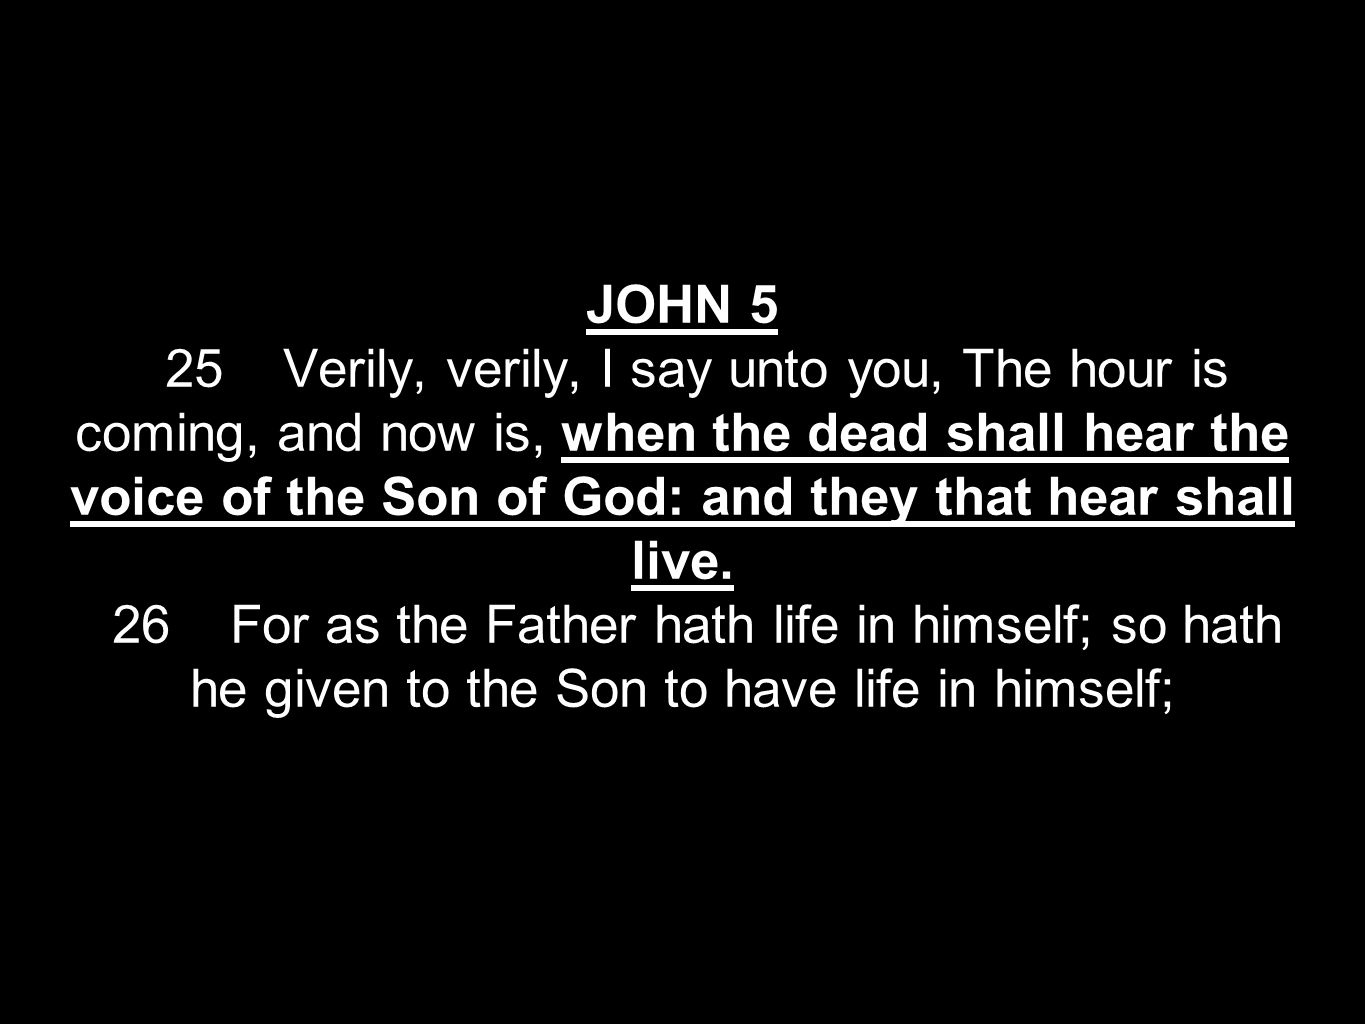 JOHN 5 25 Verily, verily, I say unto you, The hour is coming, and now is, when the dead shall hear the voice of the Son of God: and they that hear shall live.